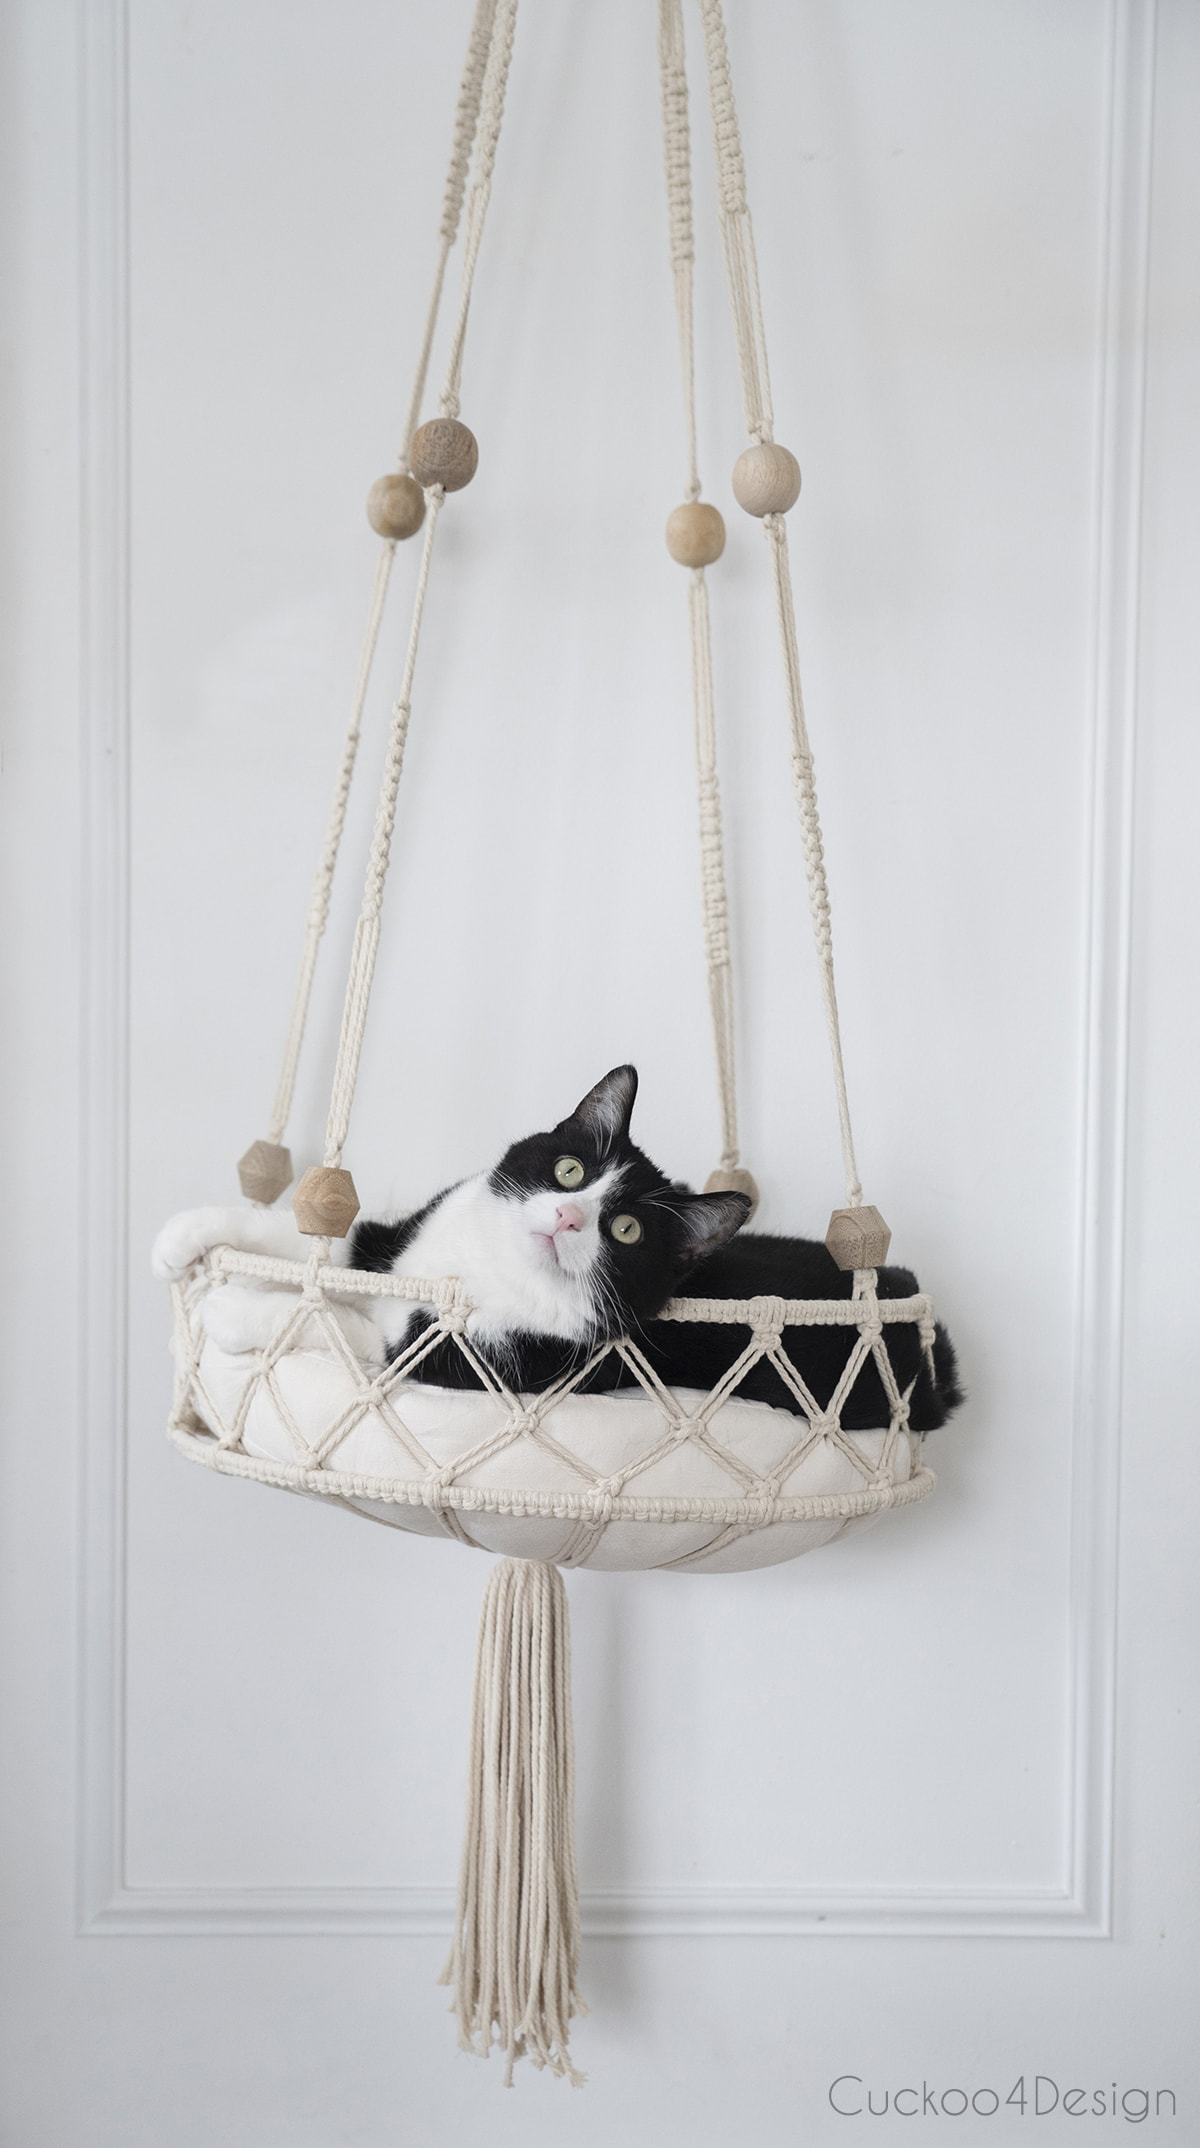 front view of cat and hanging macramé cat bed